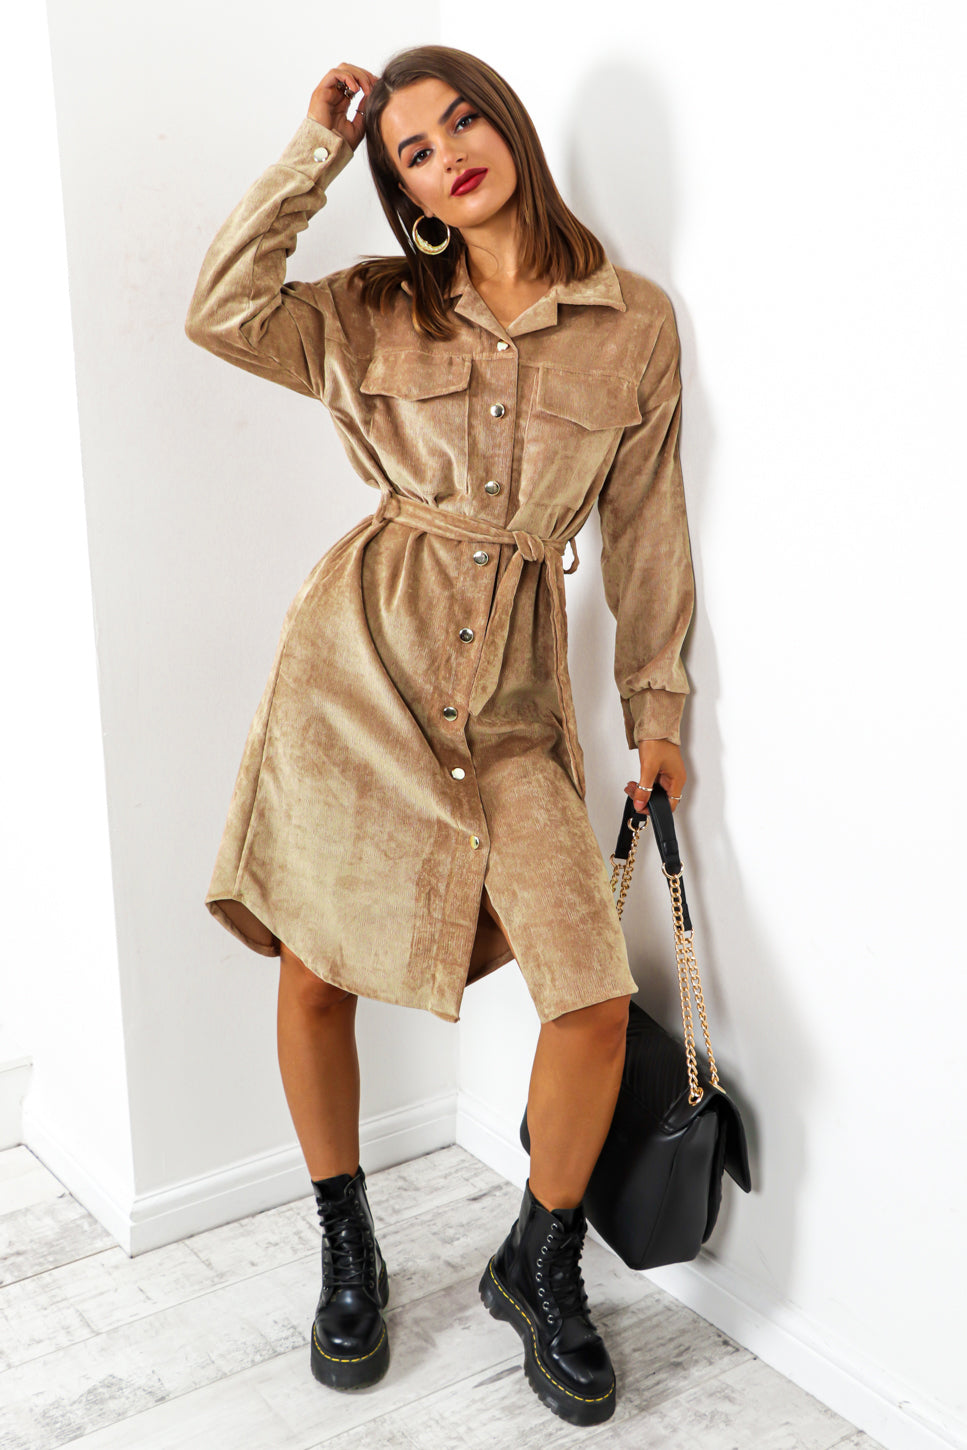 Own Ac-cord - Camel Midi Shirt Dress